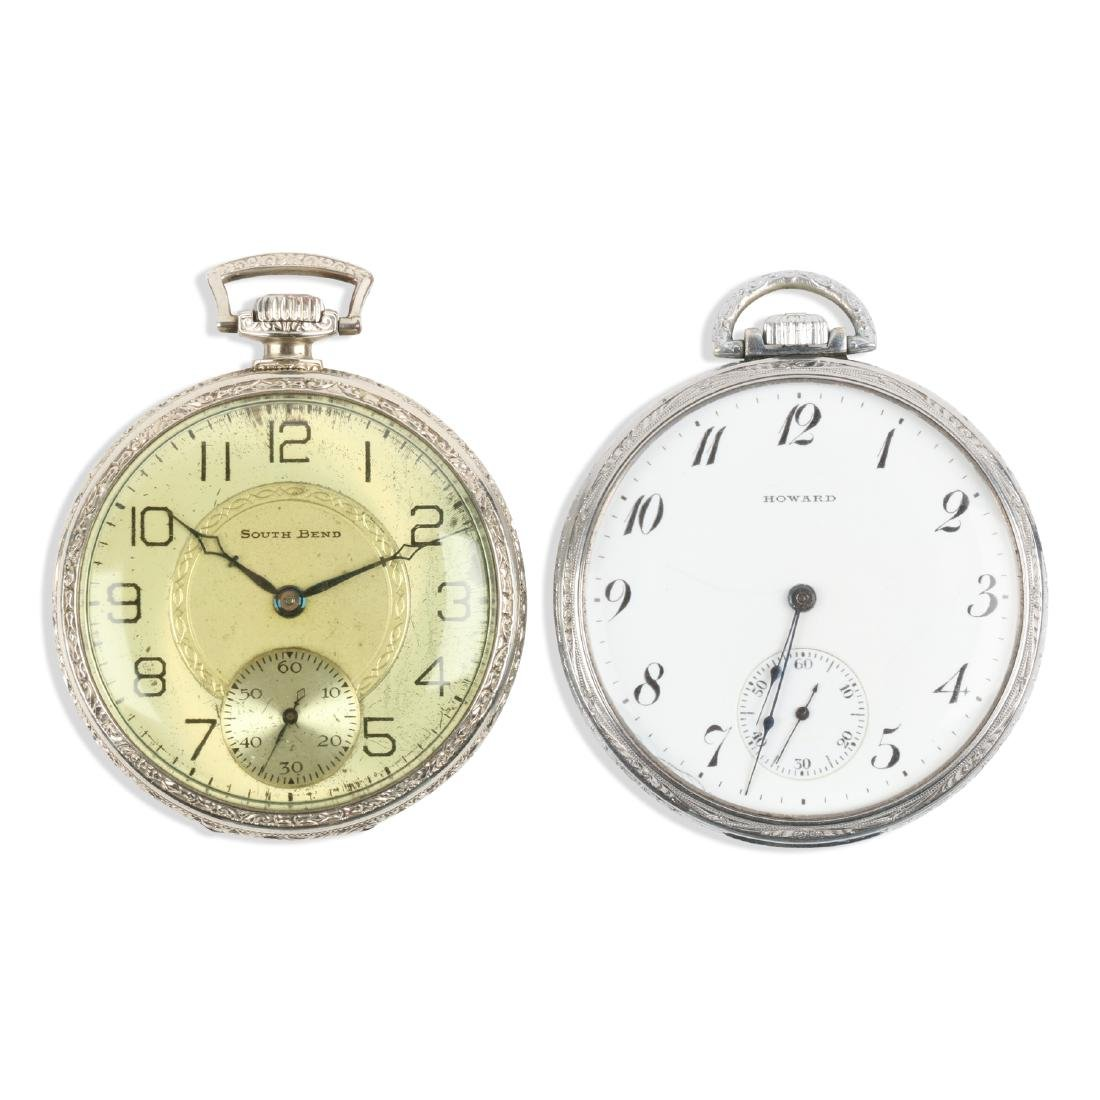 "South Bend, E. Howard, ""429"" & Series 7 Pocket Watches"